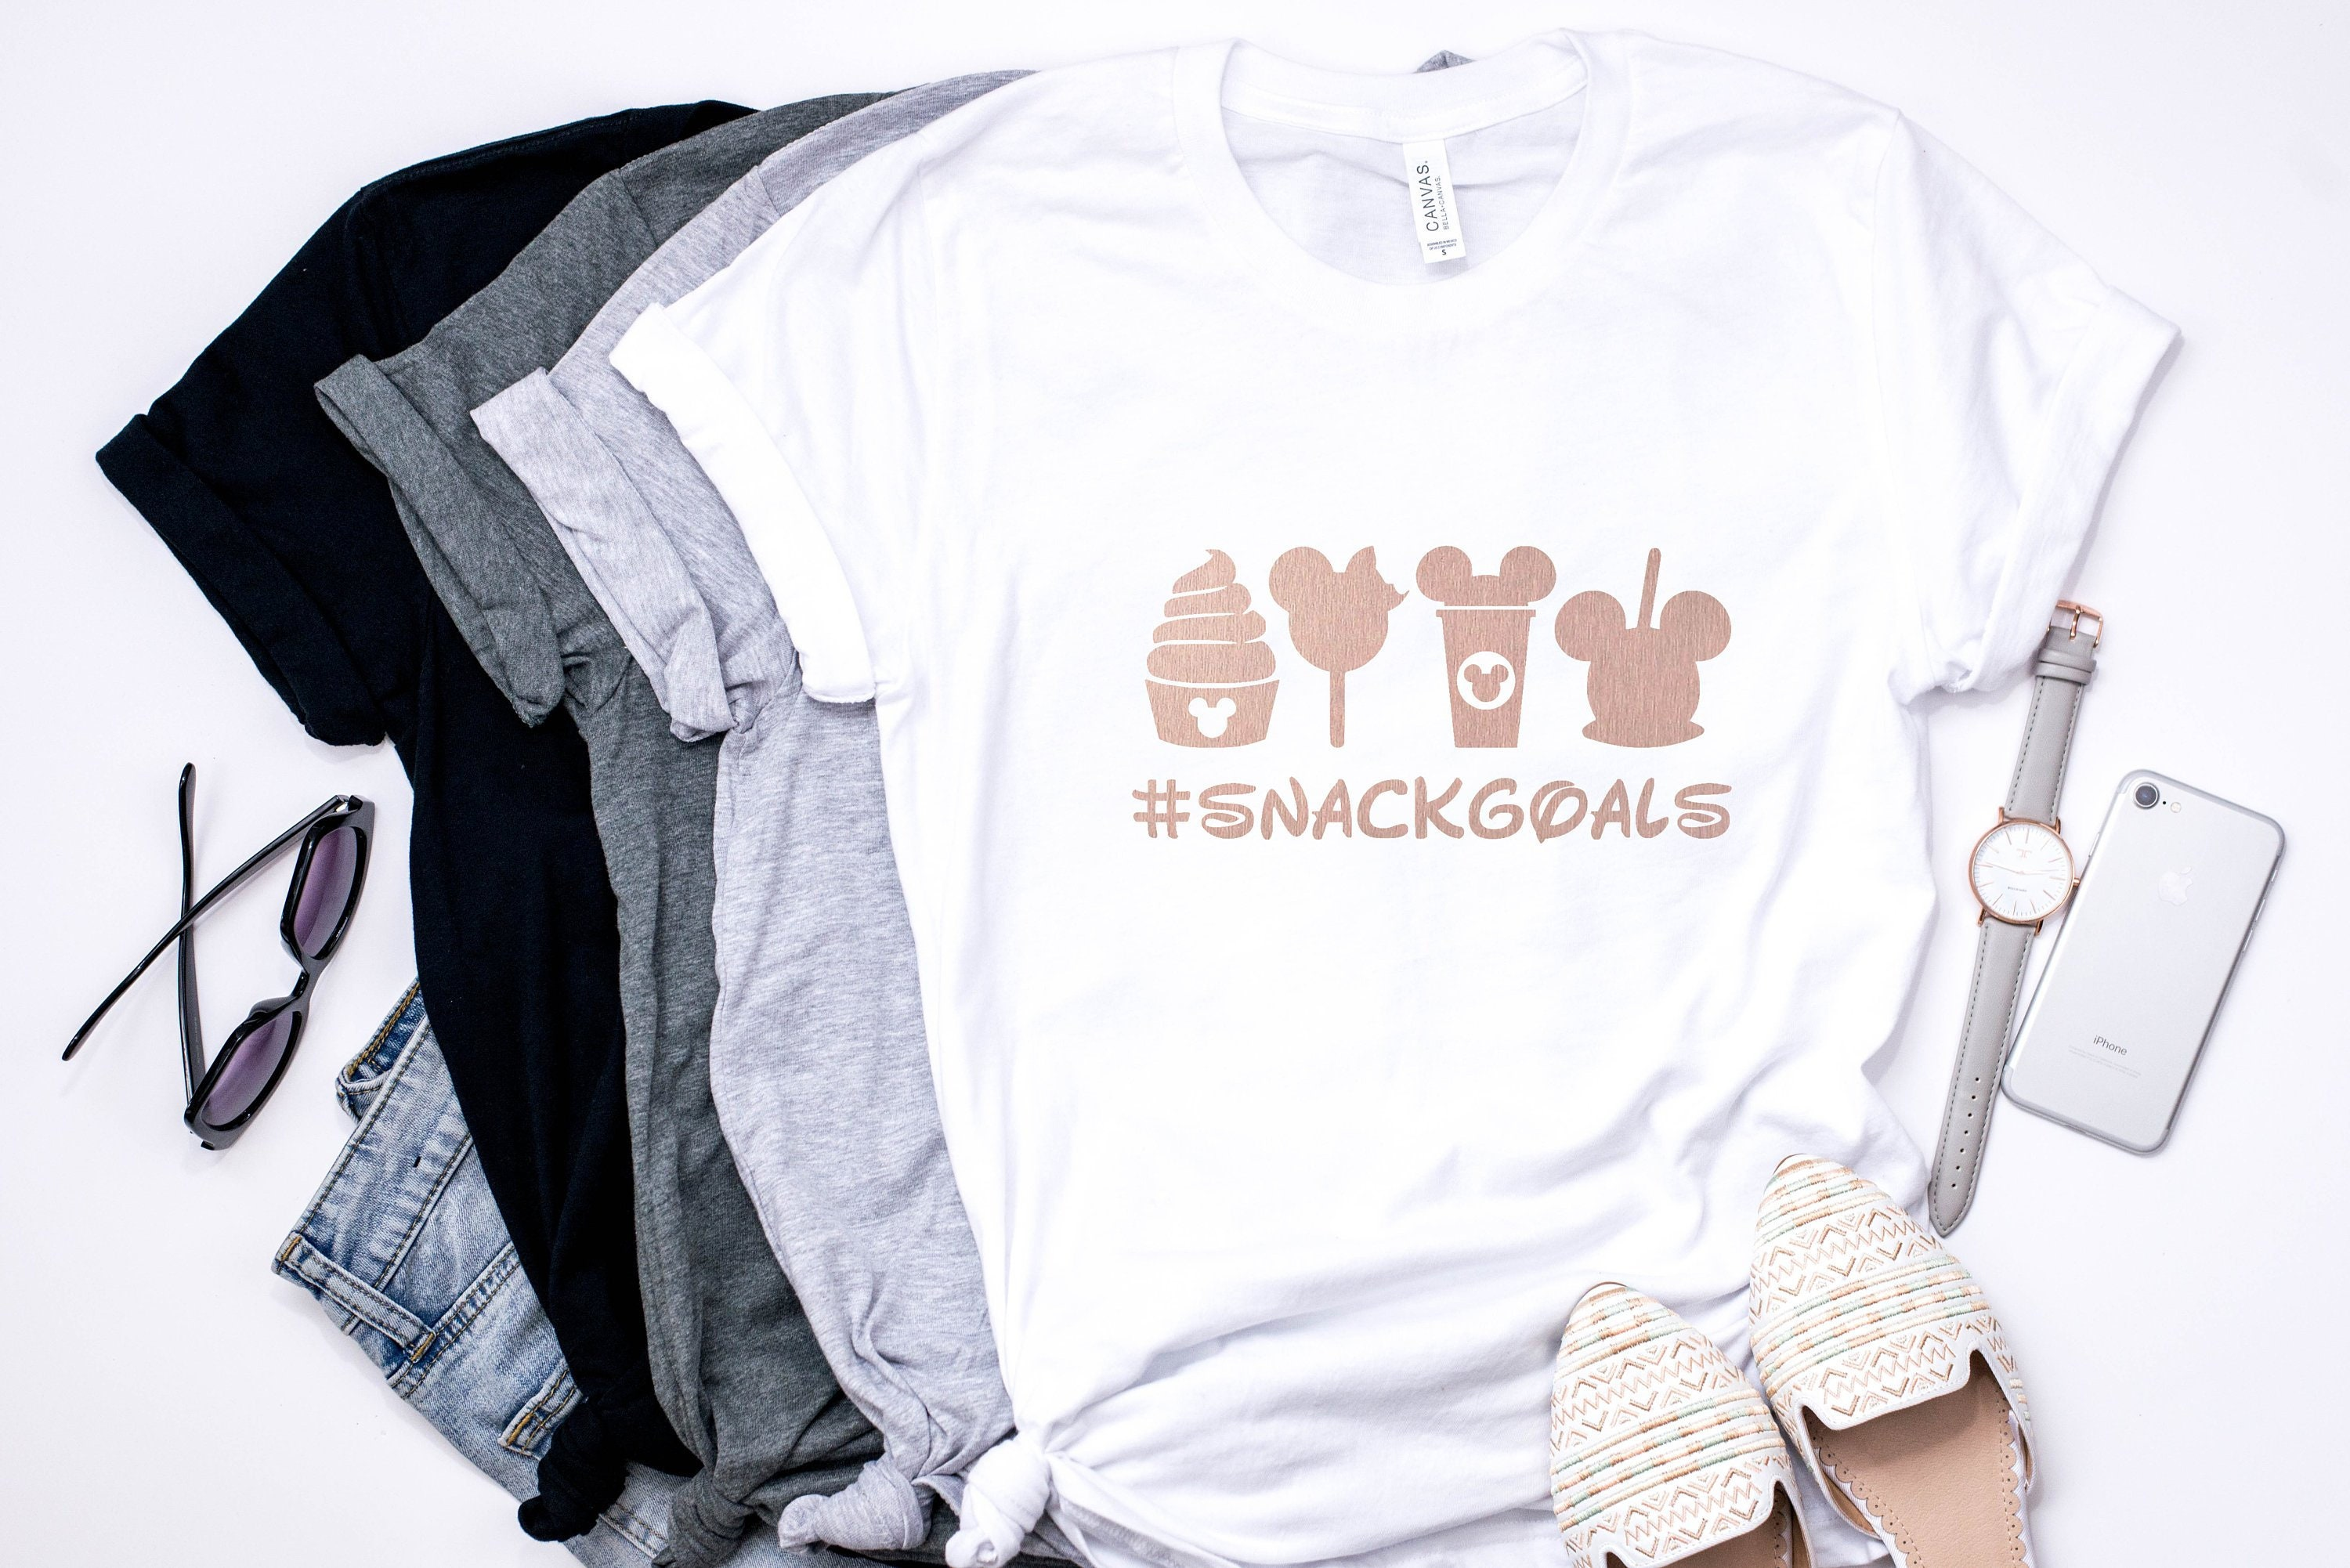 1c4cf04b0 Disney Snack Goals / Flower Tee / Graphic Tee / Basic Tee / Unisex /  Women's Tee. gallery photo ...